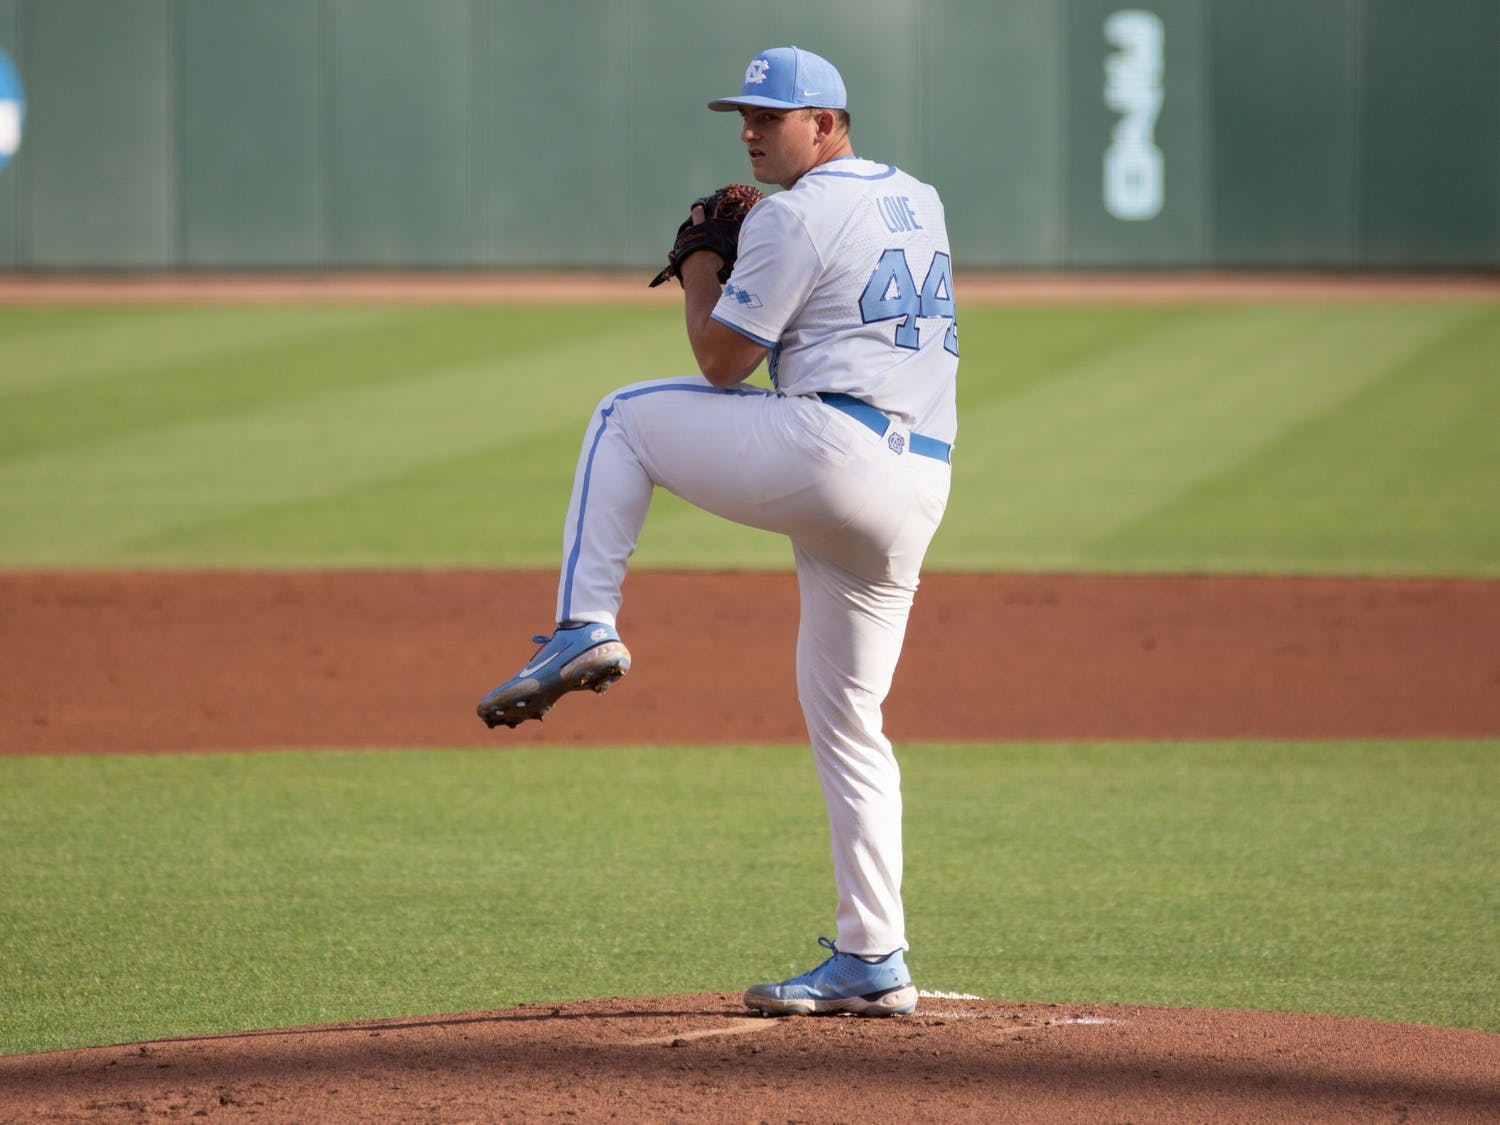 Redshirt sophomore Austin Love (44) prepares to pitch the ball in a game against Louisville on Friday, May 14, 2021. The Tar Heels beat the Cardinals 5-1.